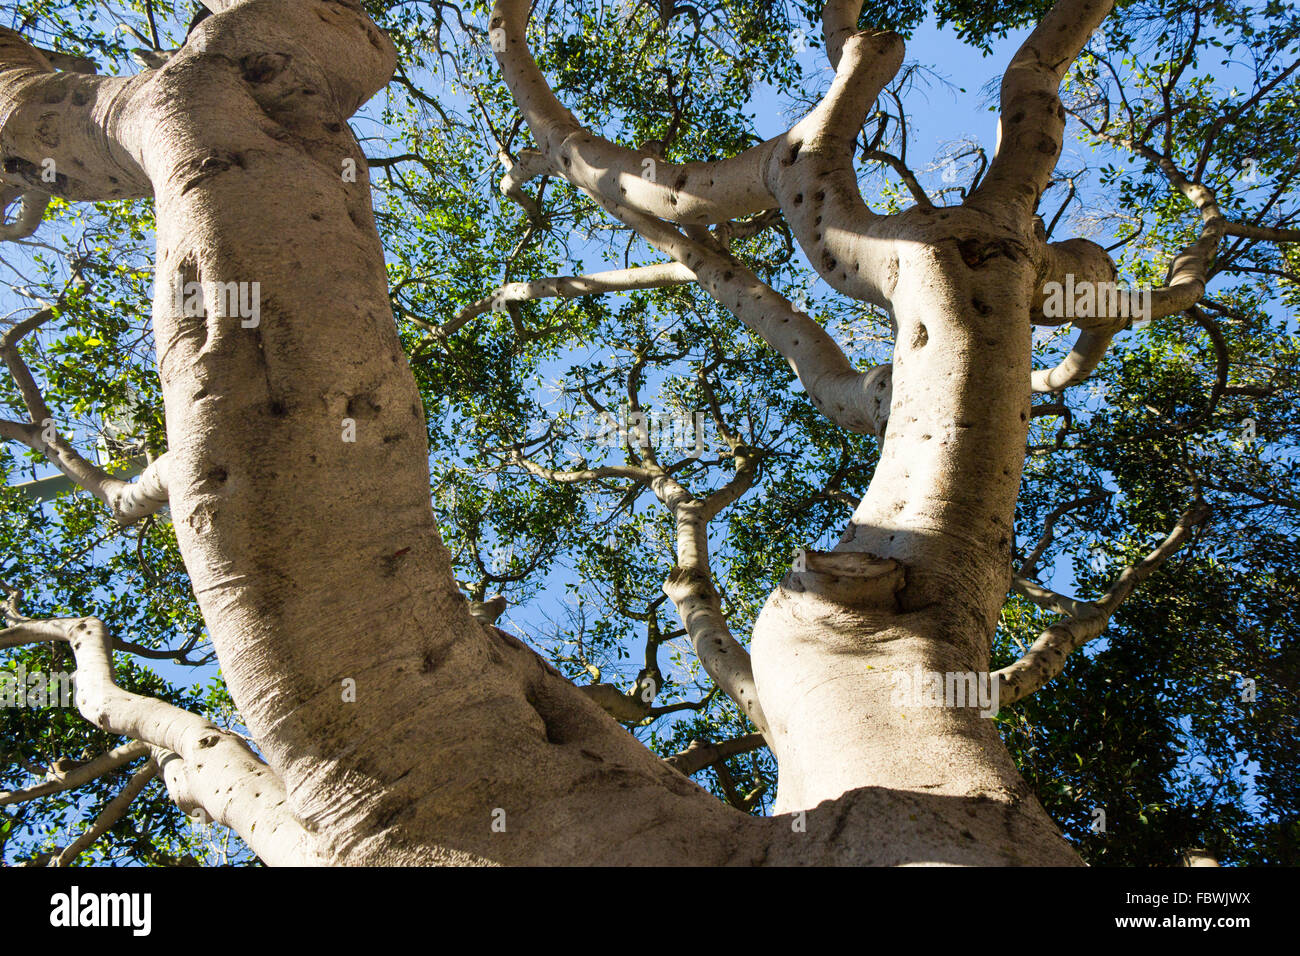 Tree branches reaching for the sky - Stock Image